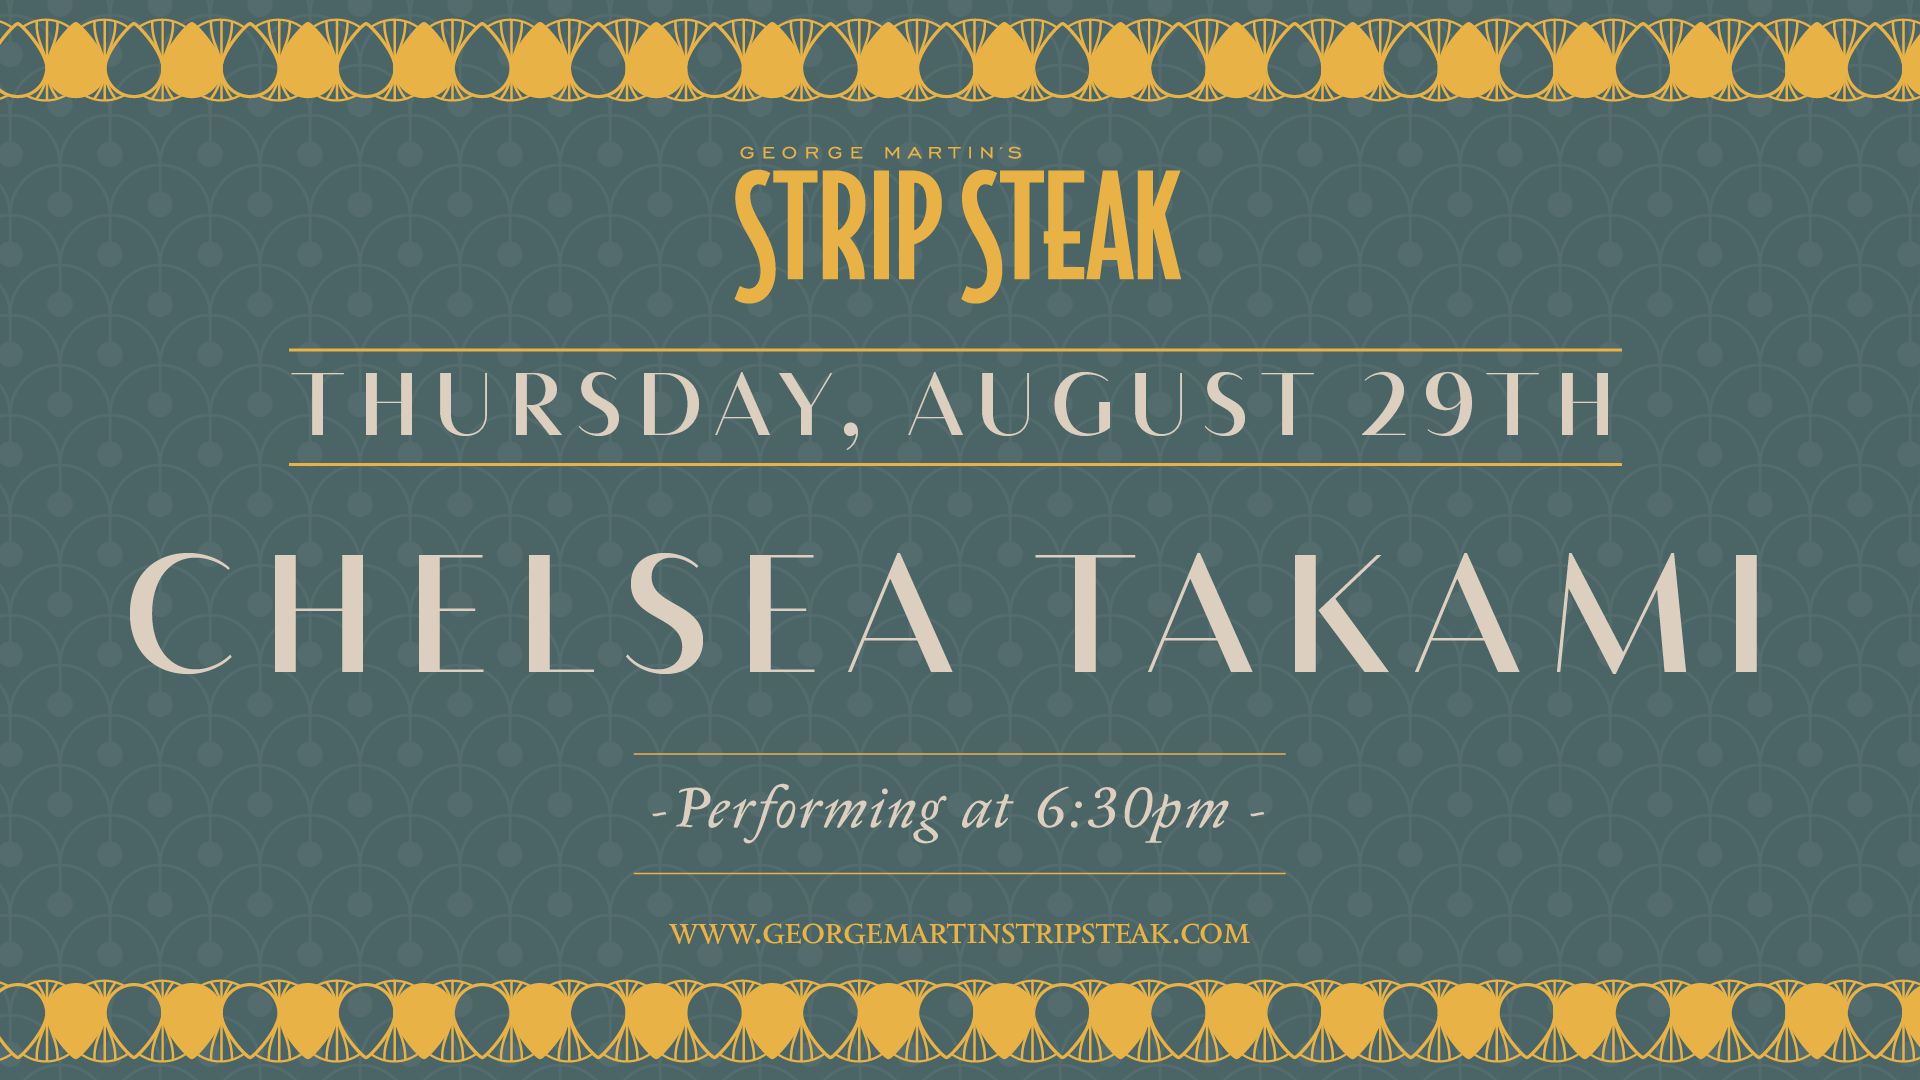 Flyer for live music with Chelsea Takami on August 29th at 6:30pm